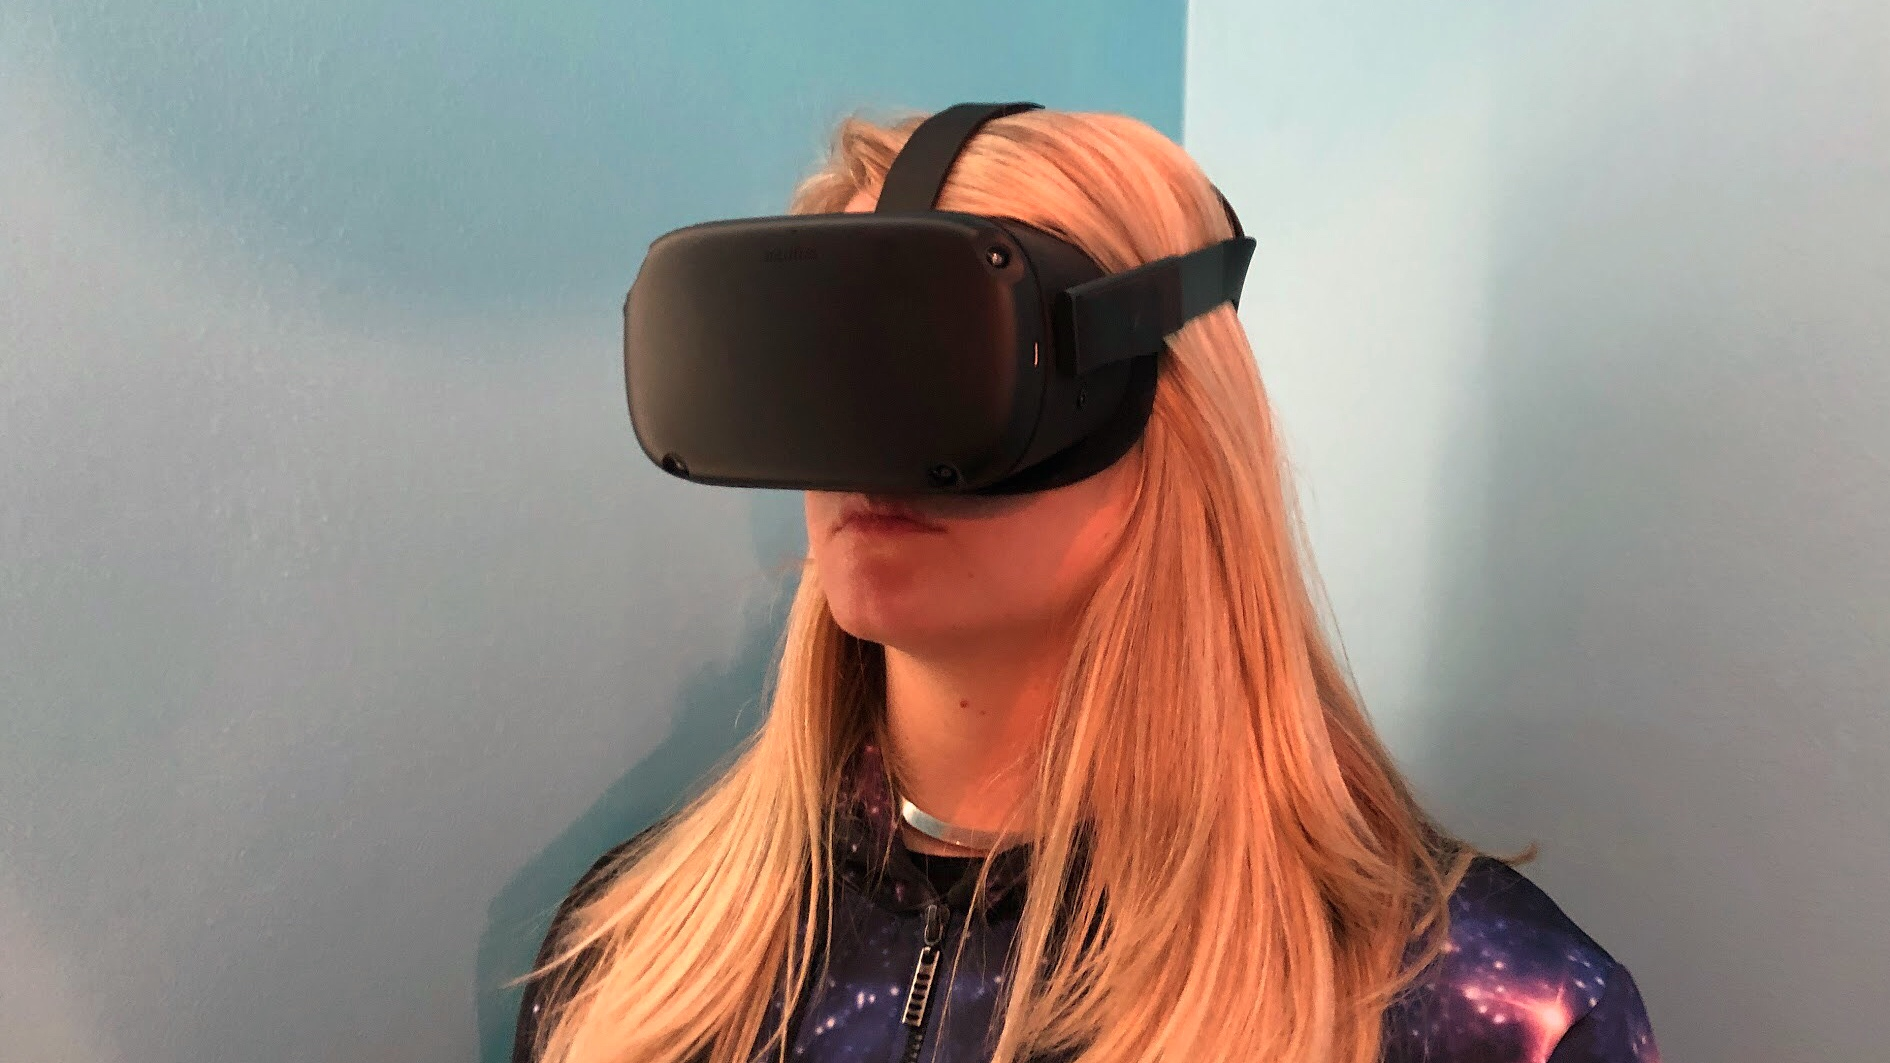 A photo of becca wearing the oculus quest vr headset